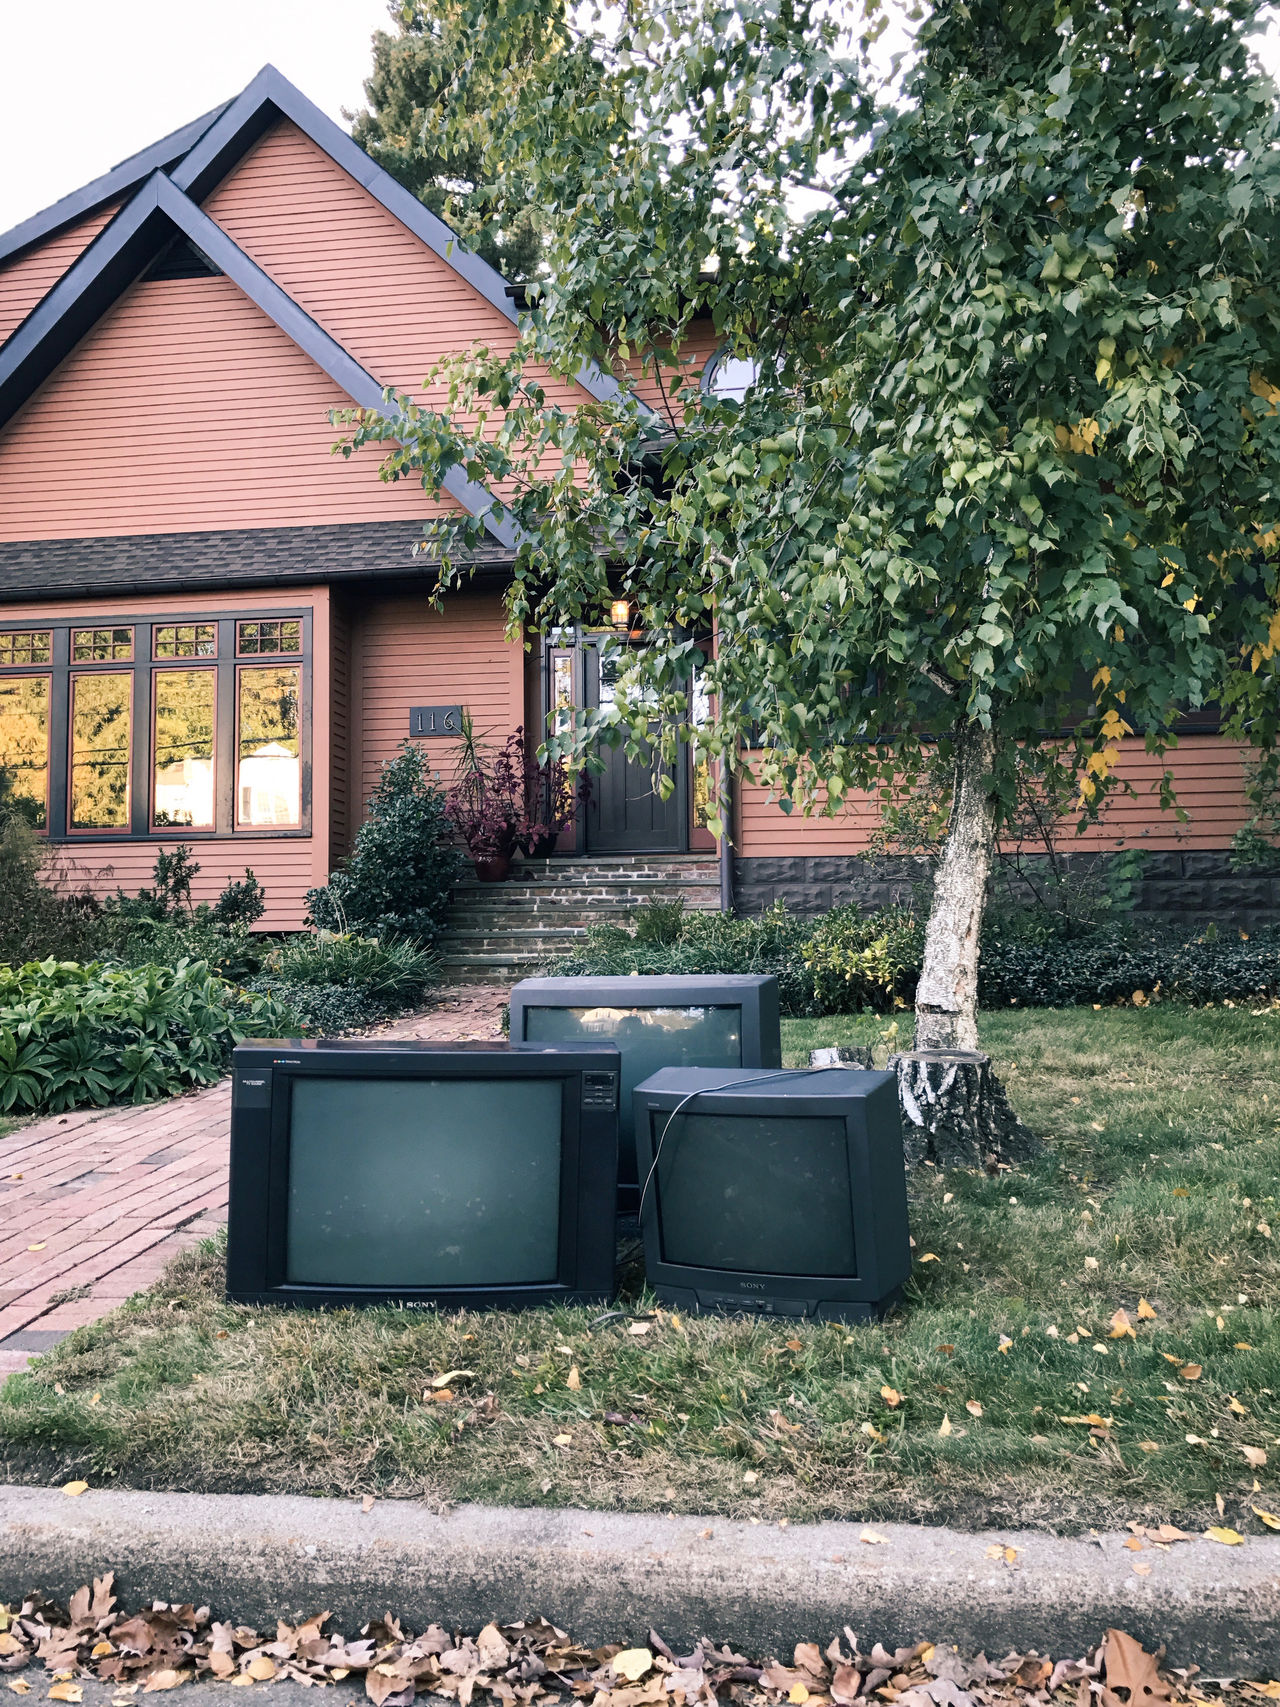 Old televisions. New Jersey, USA. Photo by Tom Bland. Abandoned Change City Consumption  Discarded Disruption E-waste Entertainment Environmental Issues Garbage IPhone IPhoneography Old Outdated Outdoors Street Suburbia Suburbs Technology Television Televisions Thrown Away Tv Unloved Useless